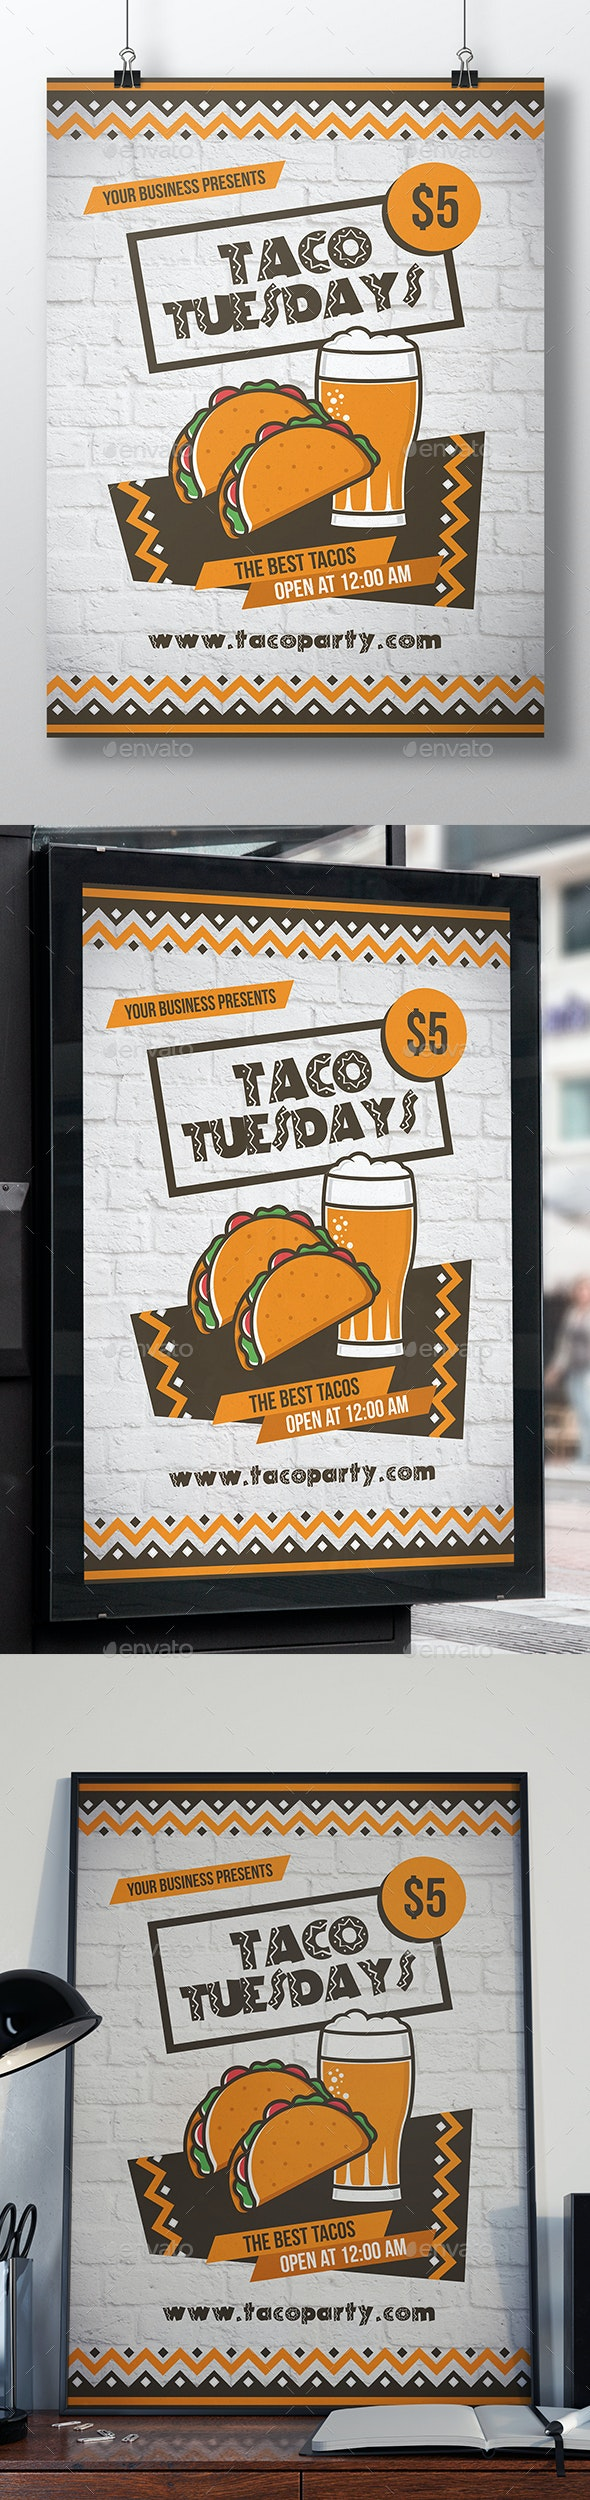 Mexican Tacos Flyer Template - Restaurant Flyers